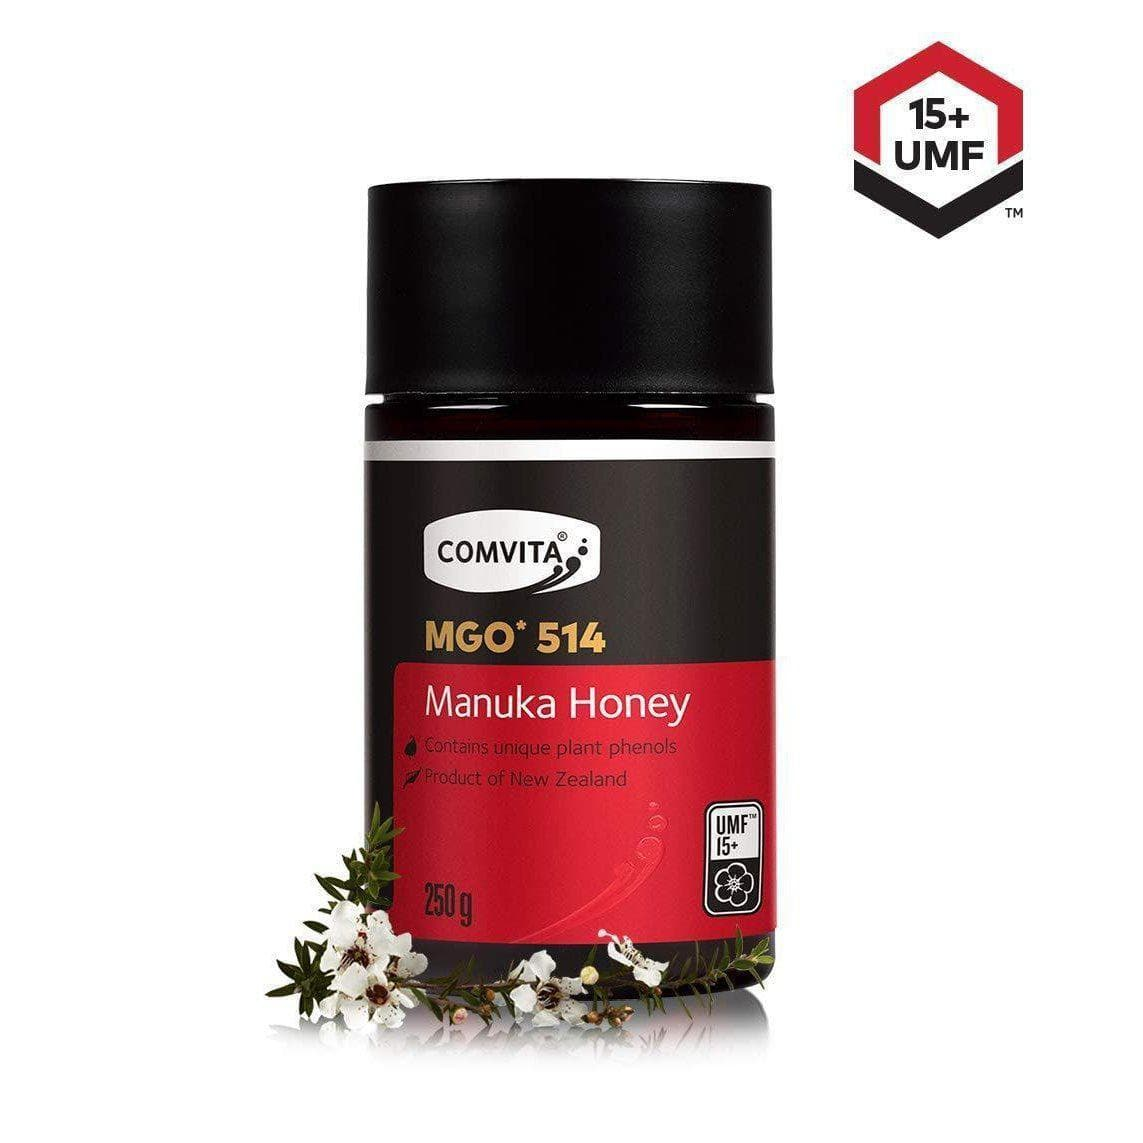 Manuka Honey By Comvita - UMF 15+ - 250 gms